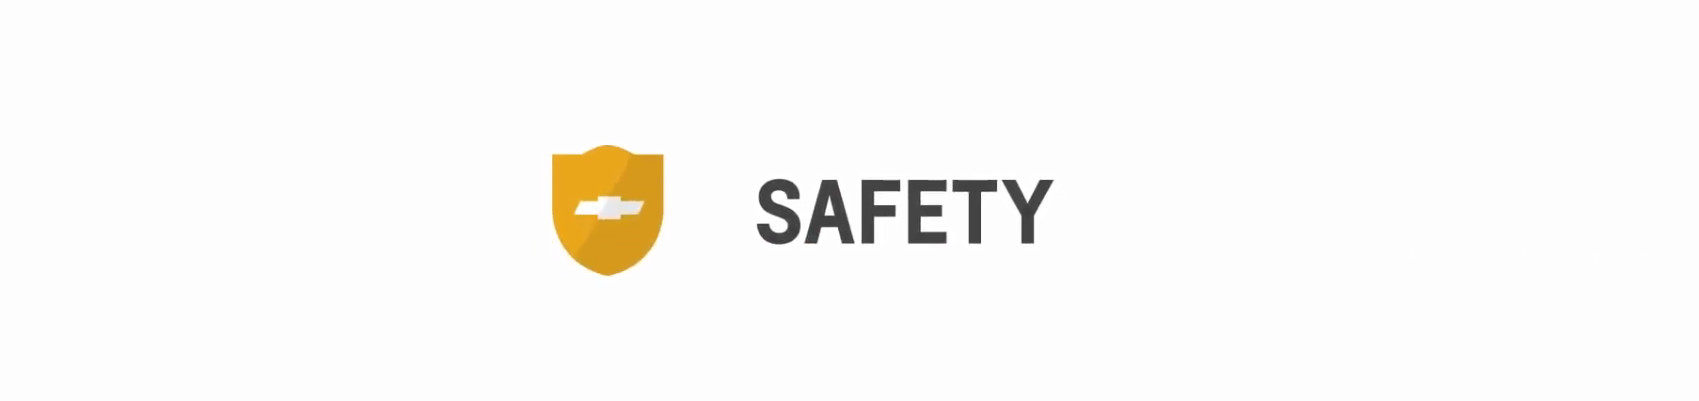 2020 Chevrolet Safety Features in Chantilly, VA